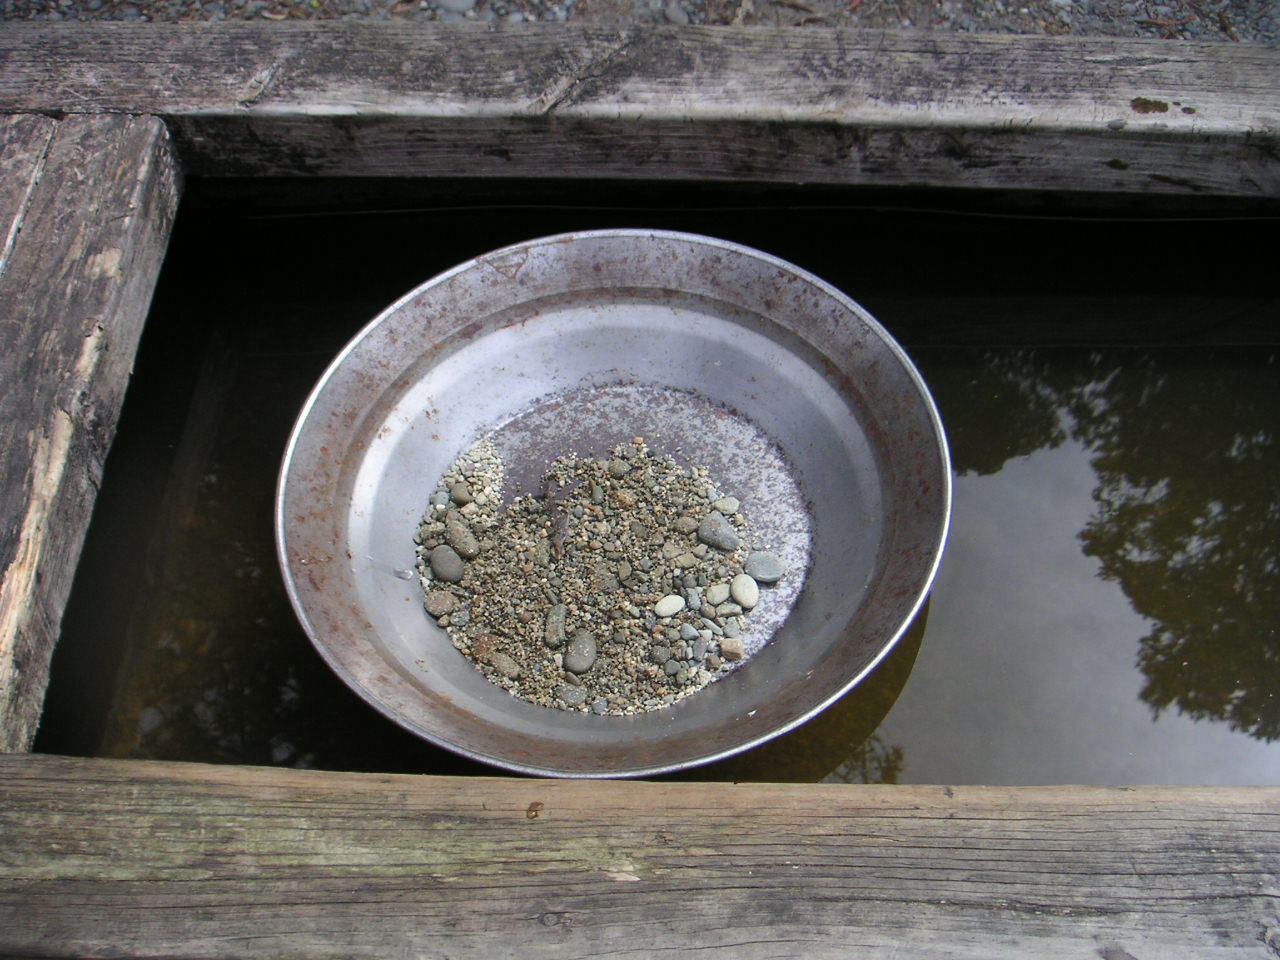 panning for gold in the gold rush - photo #25